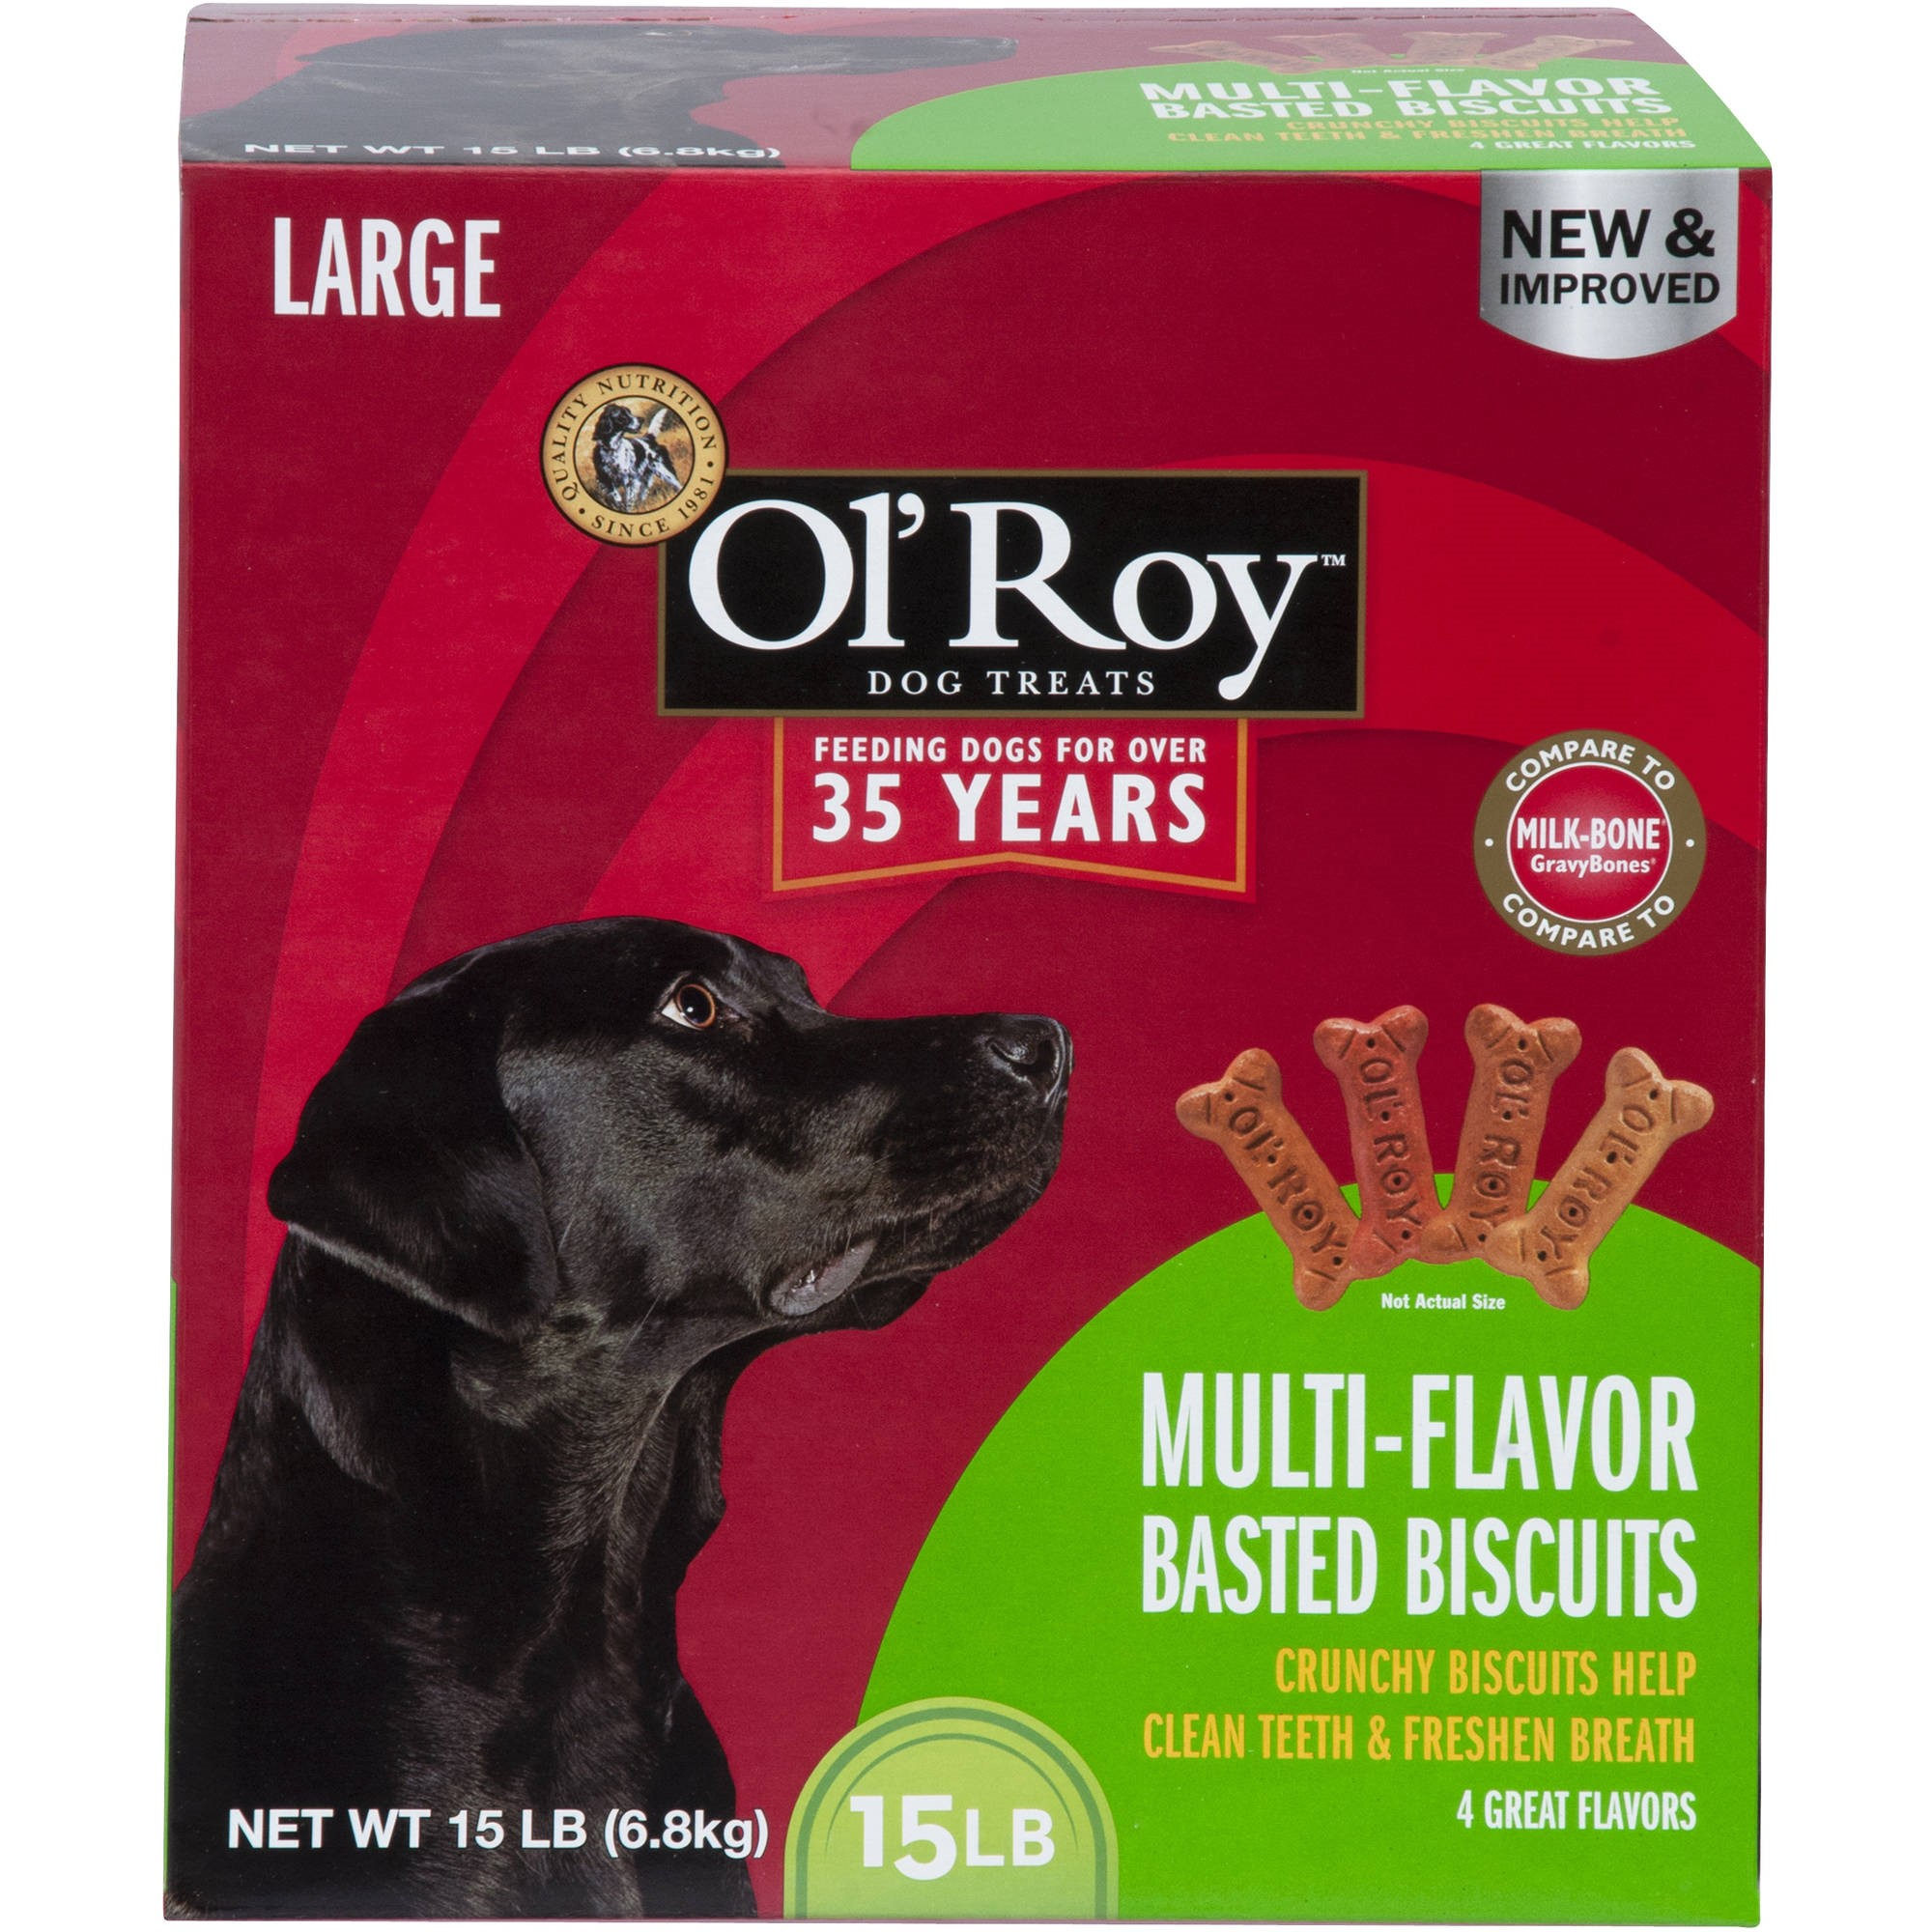 Ol' Roy Multi-Flavor Basted Biscuits, Large Breed, 15 lb